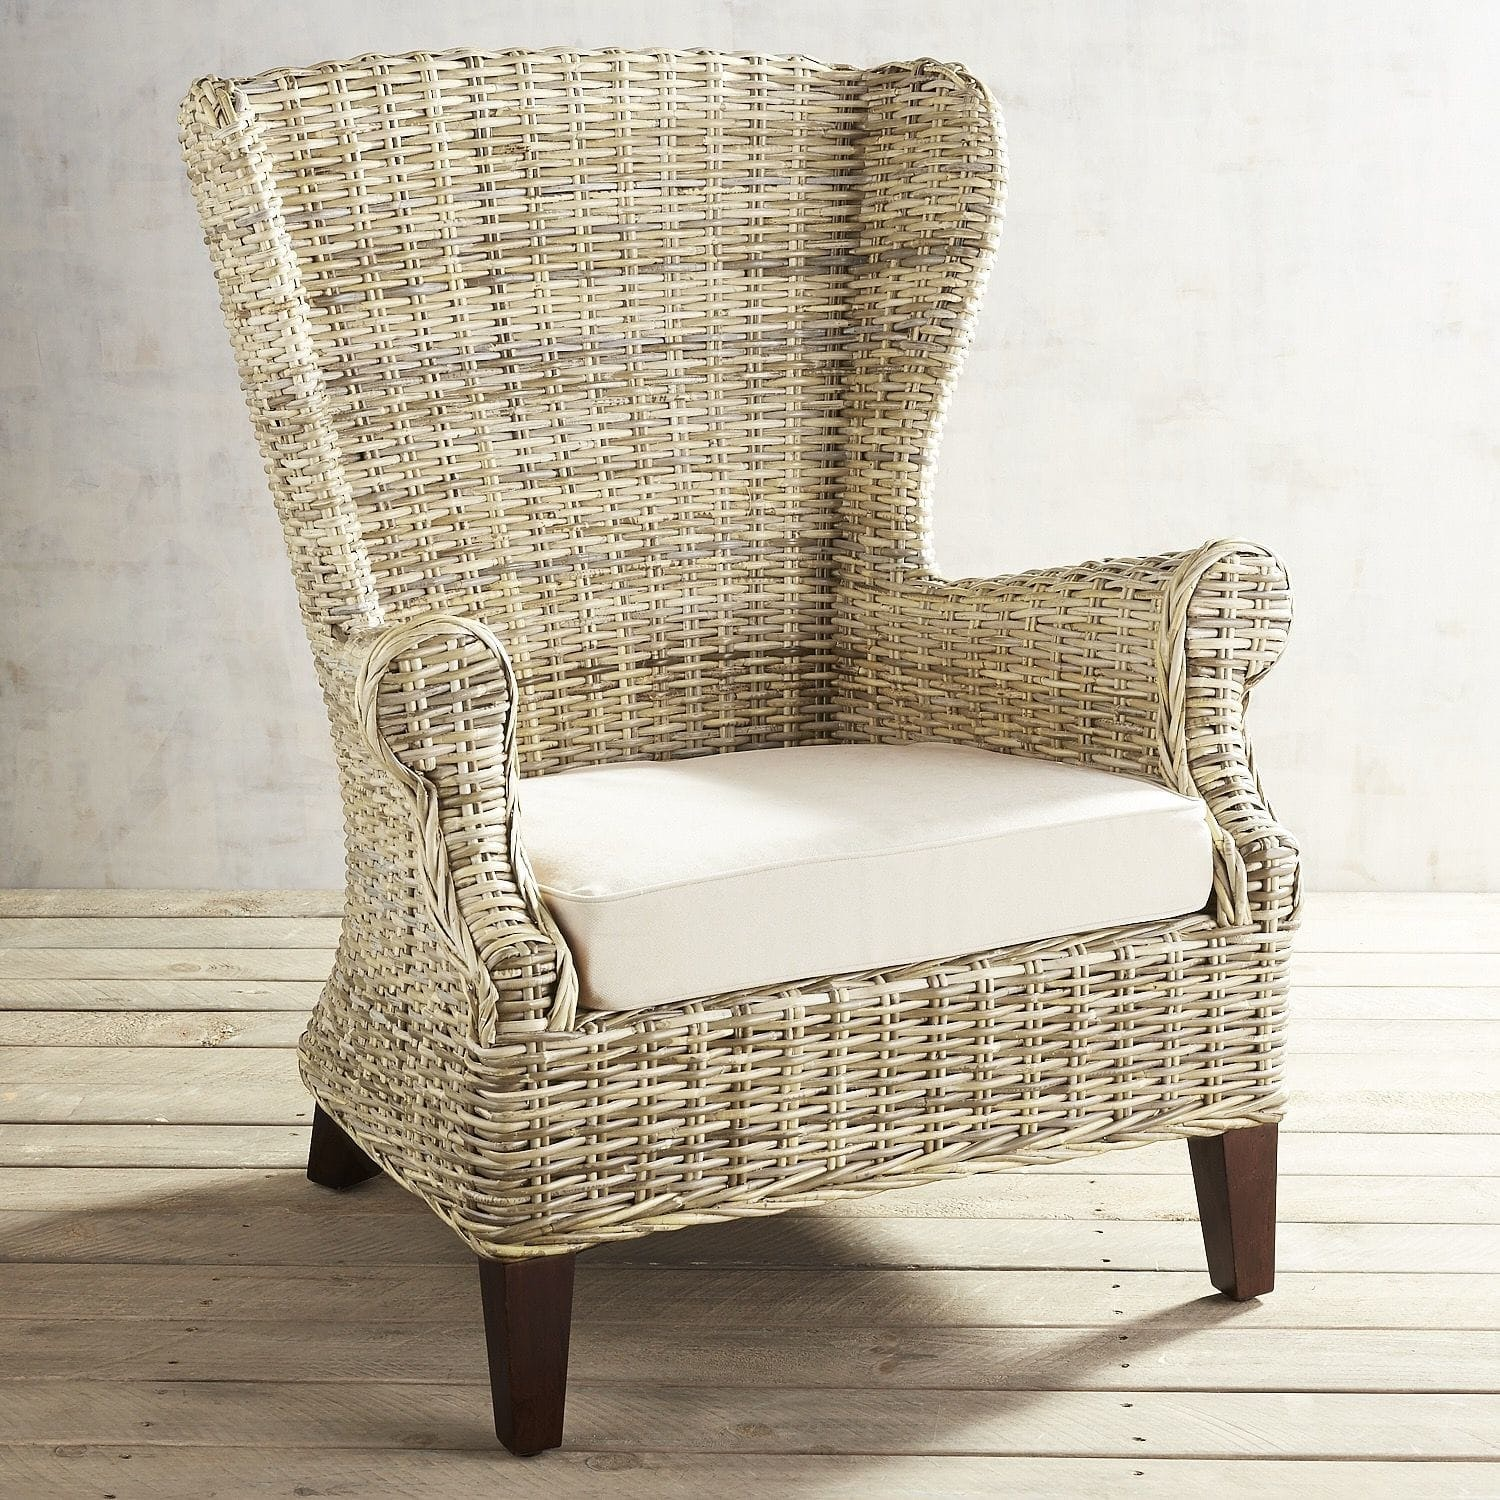 Pier 1 Outdoor Chairs | Pier One Wicker Furniture | Pier One Chairs